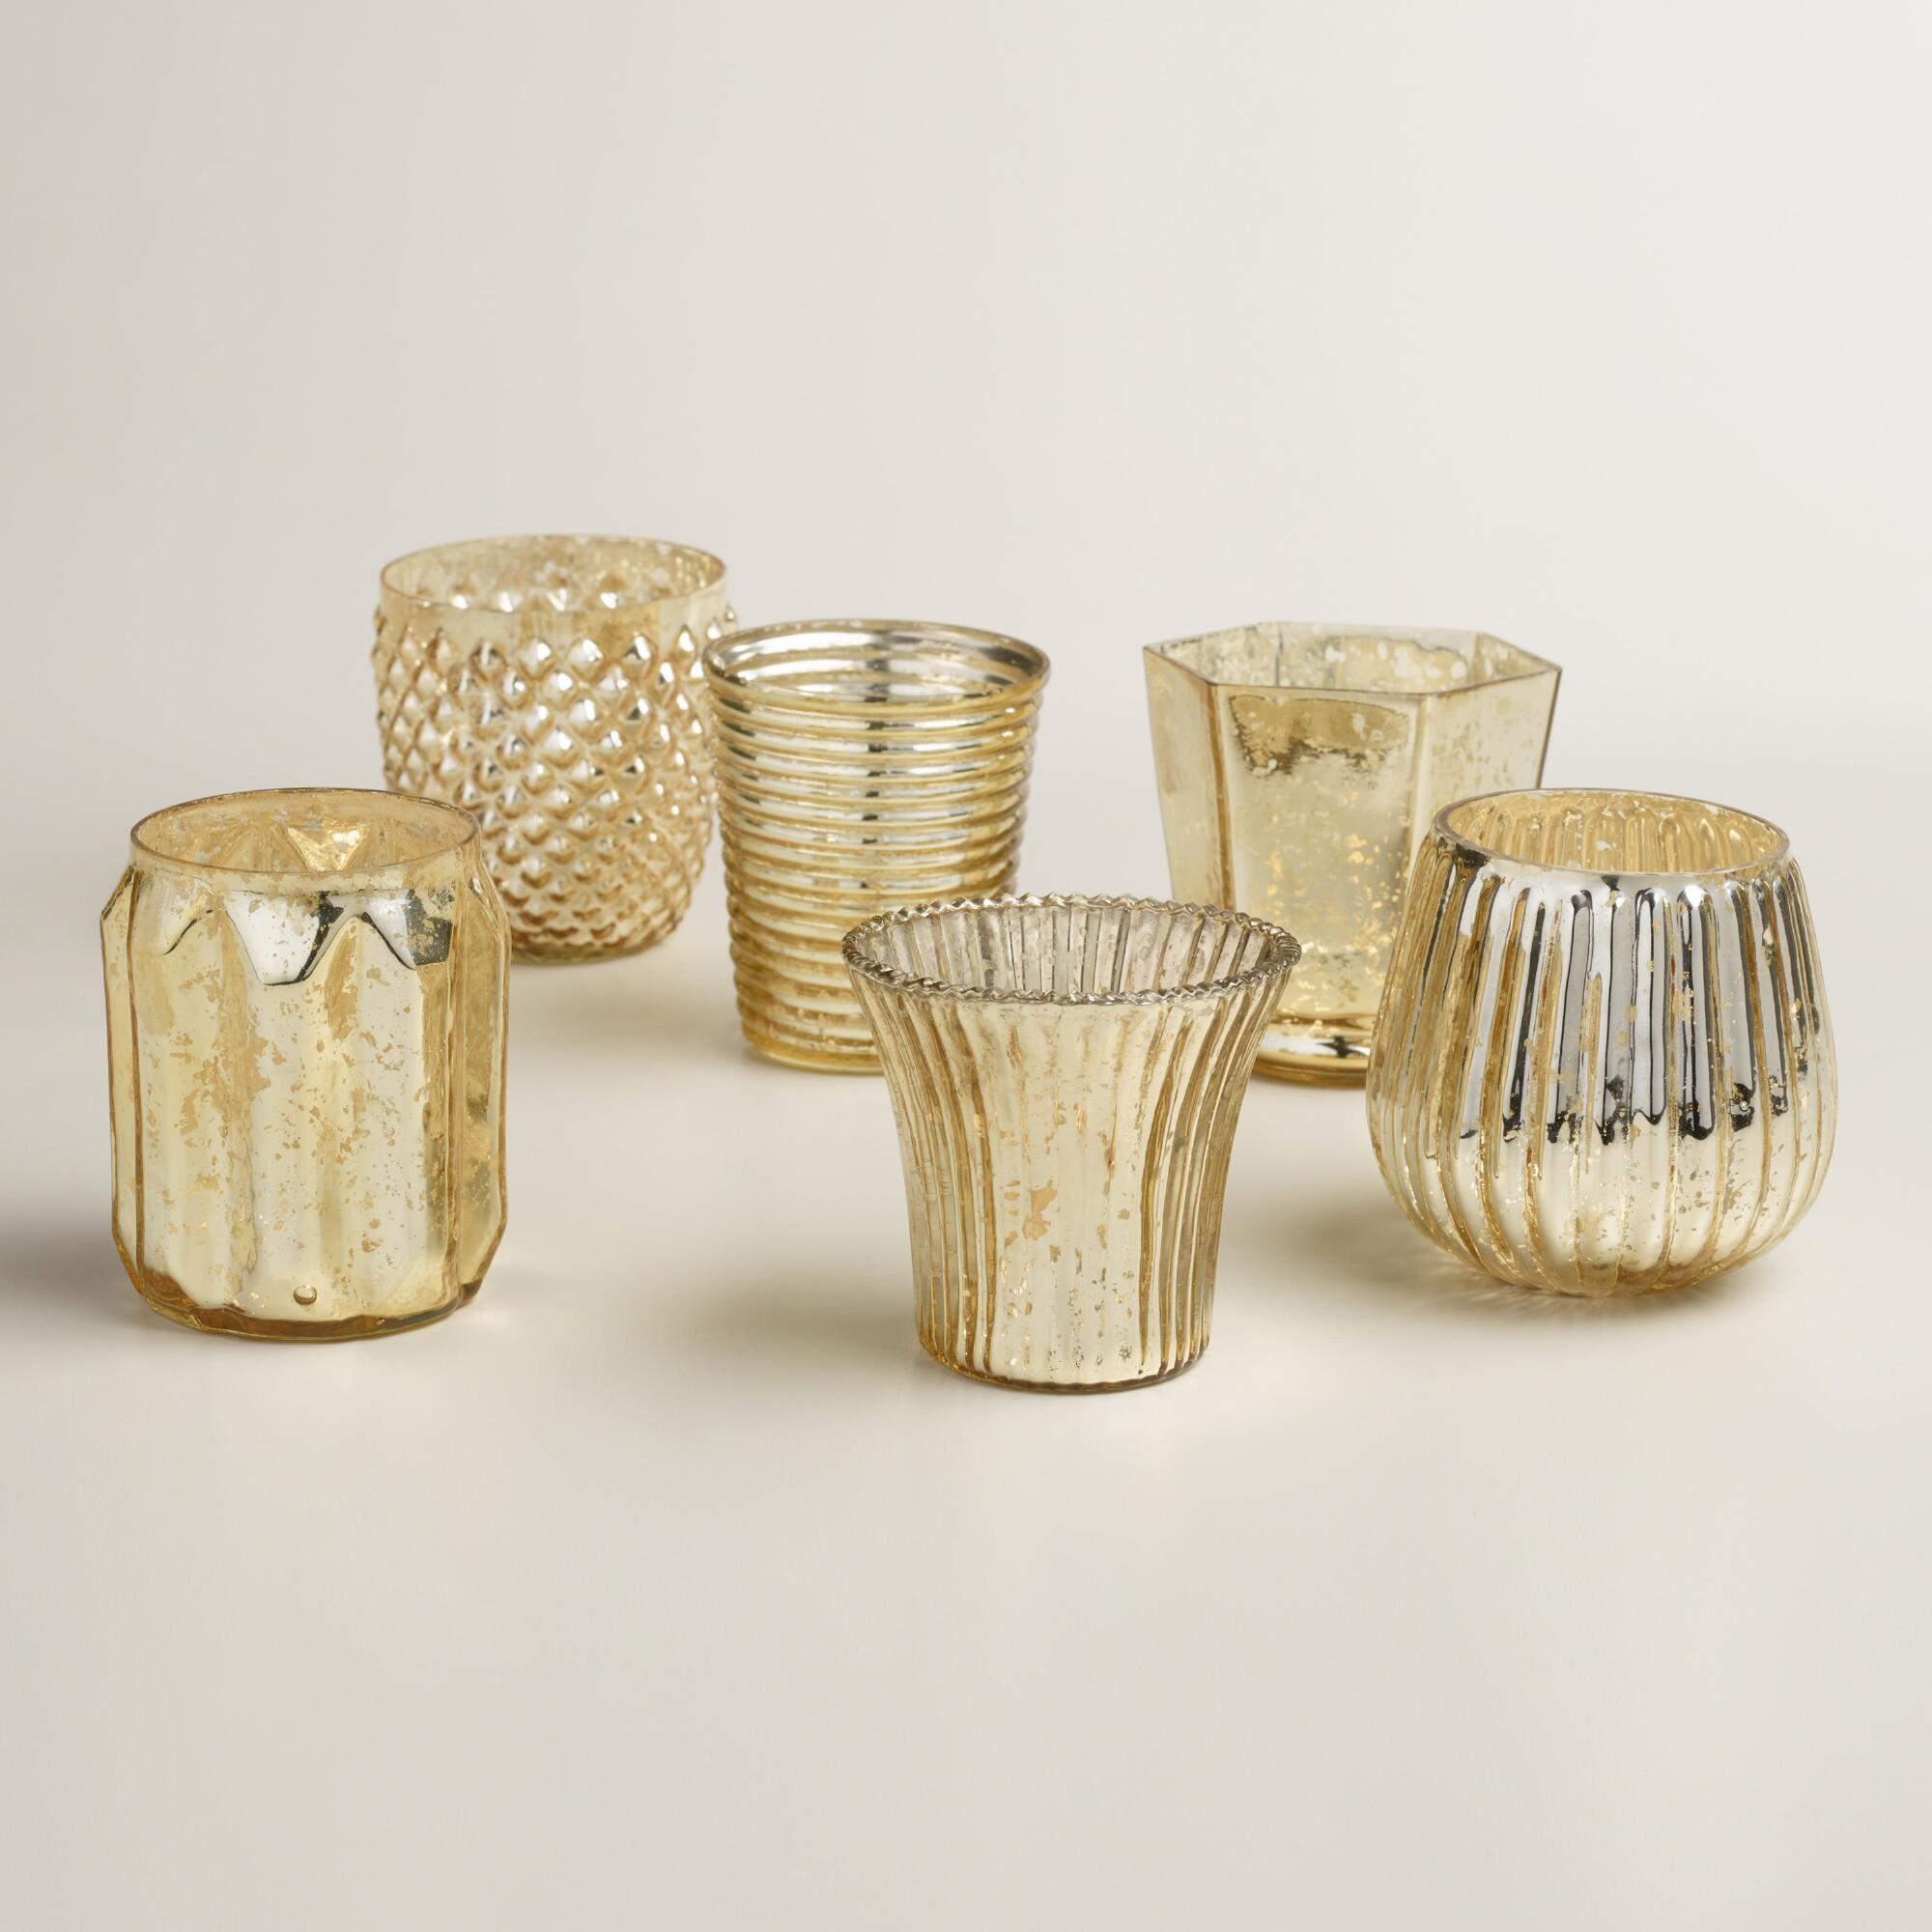 Gold Mercury Glass Votive Candleholders From Cost Plus World